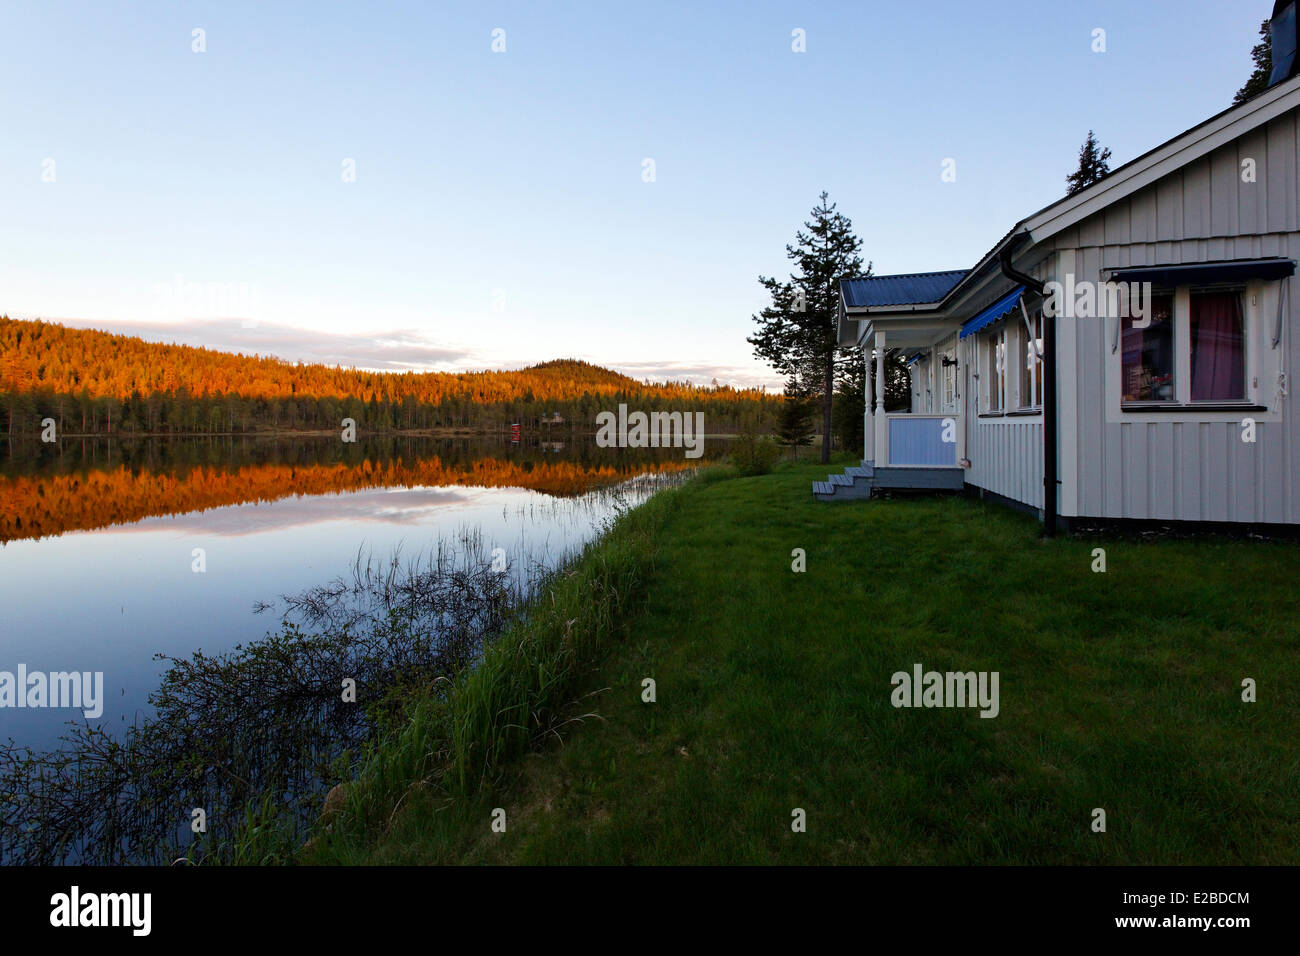 Sweden, Lapland, Norrbotten County, forest around the Lule river valley - Stock Image